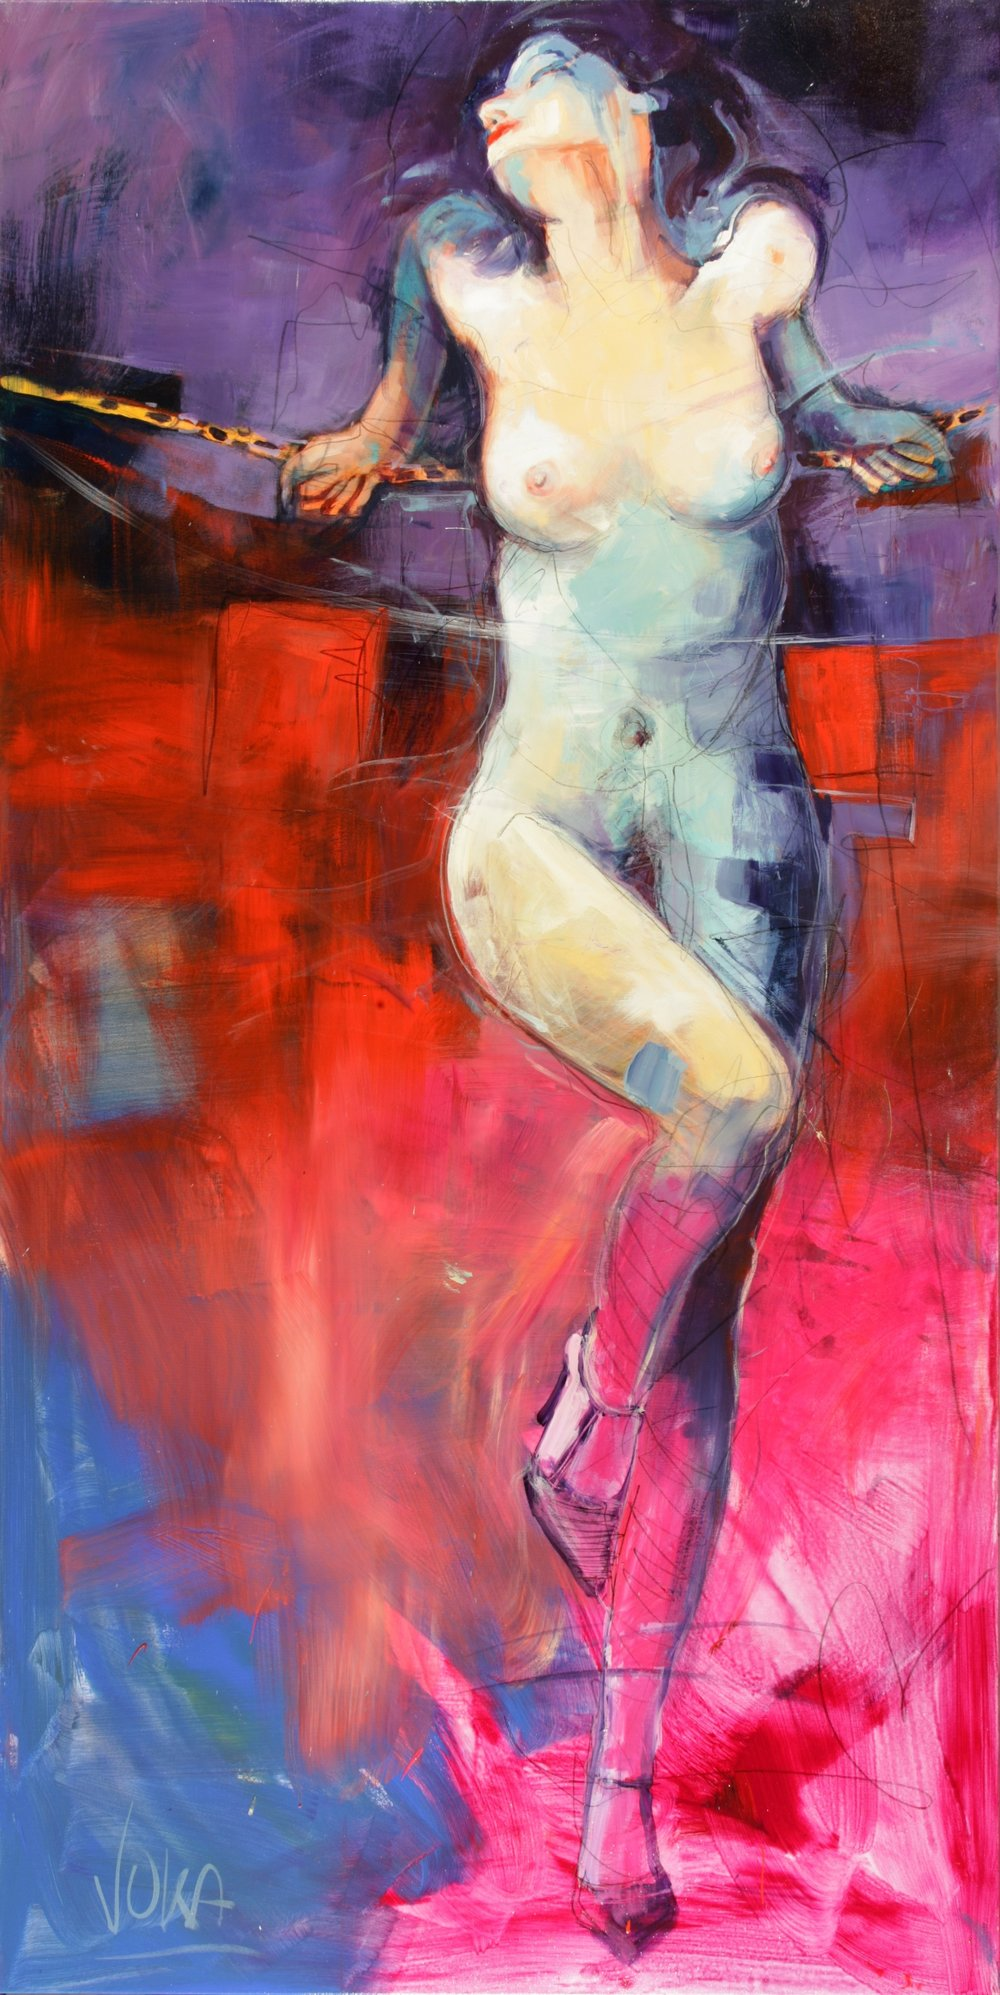 NUDE 01, 100x200 cm / 39,4x78,7 inch, Acrylic on Canvas